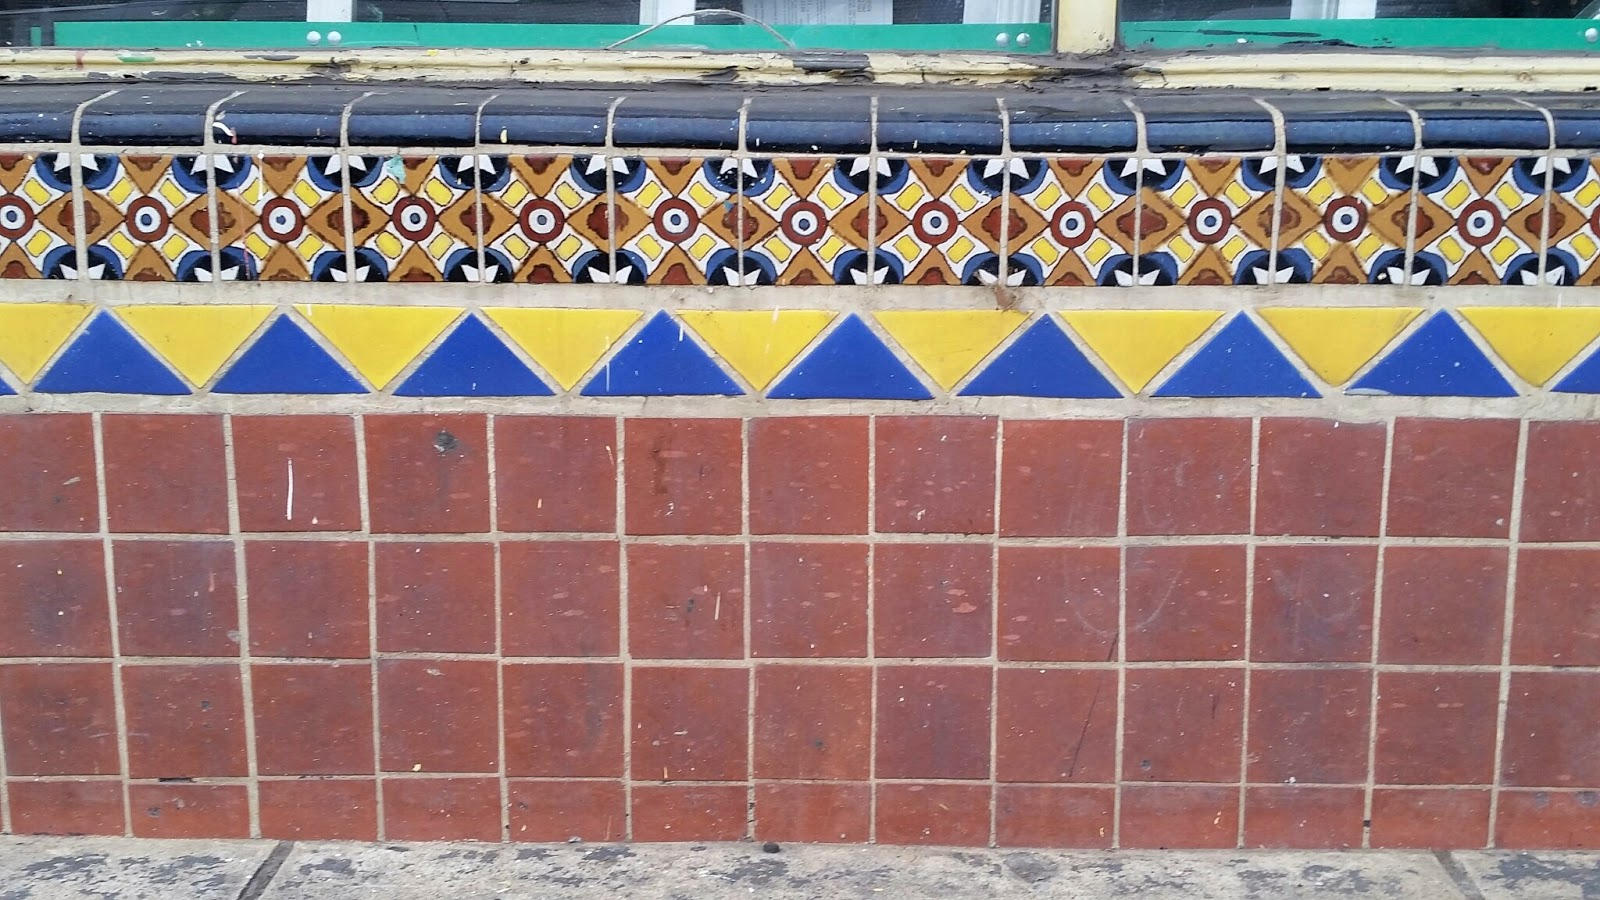 This original commercial tile installation can be found on S. La Brea Ave. in Los Angeles, CA